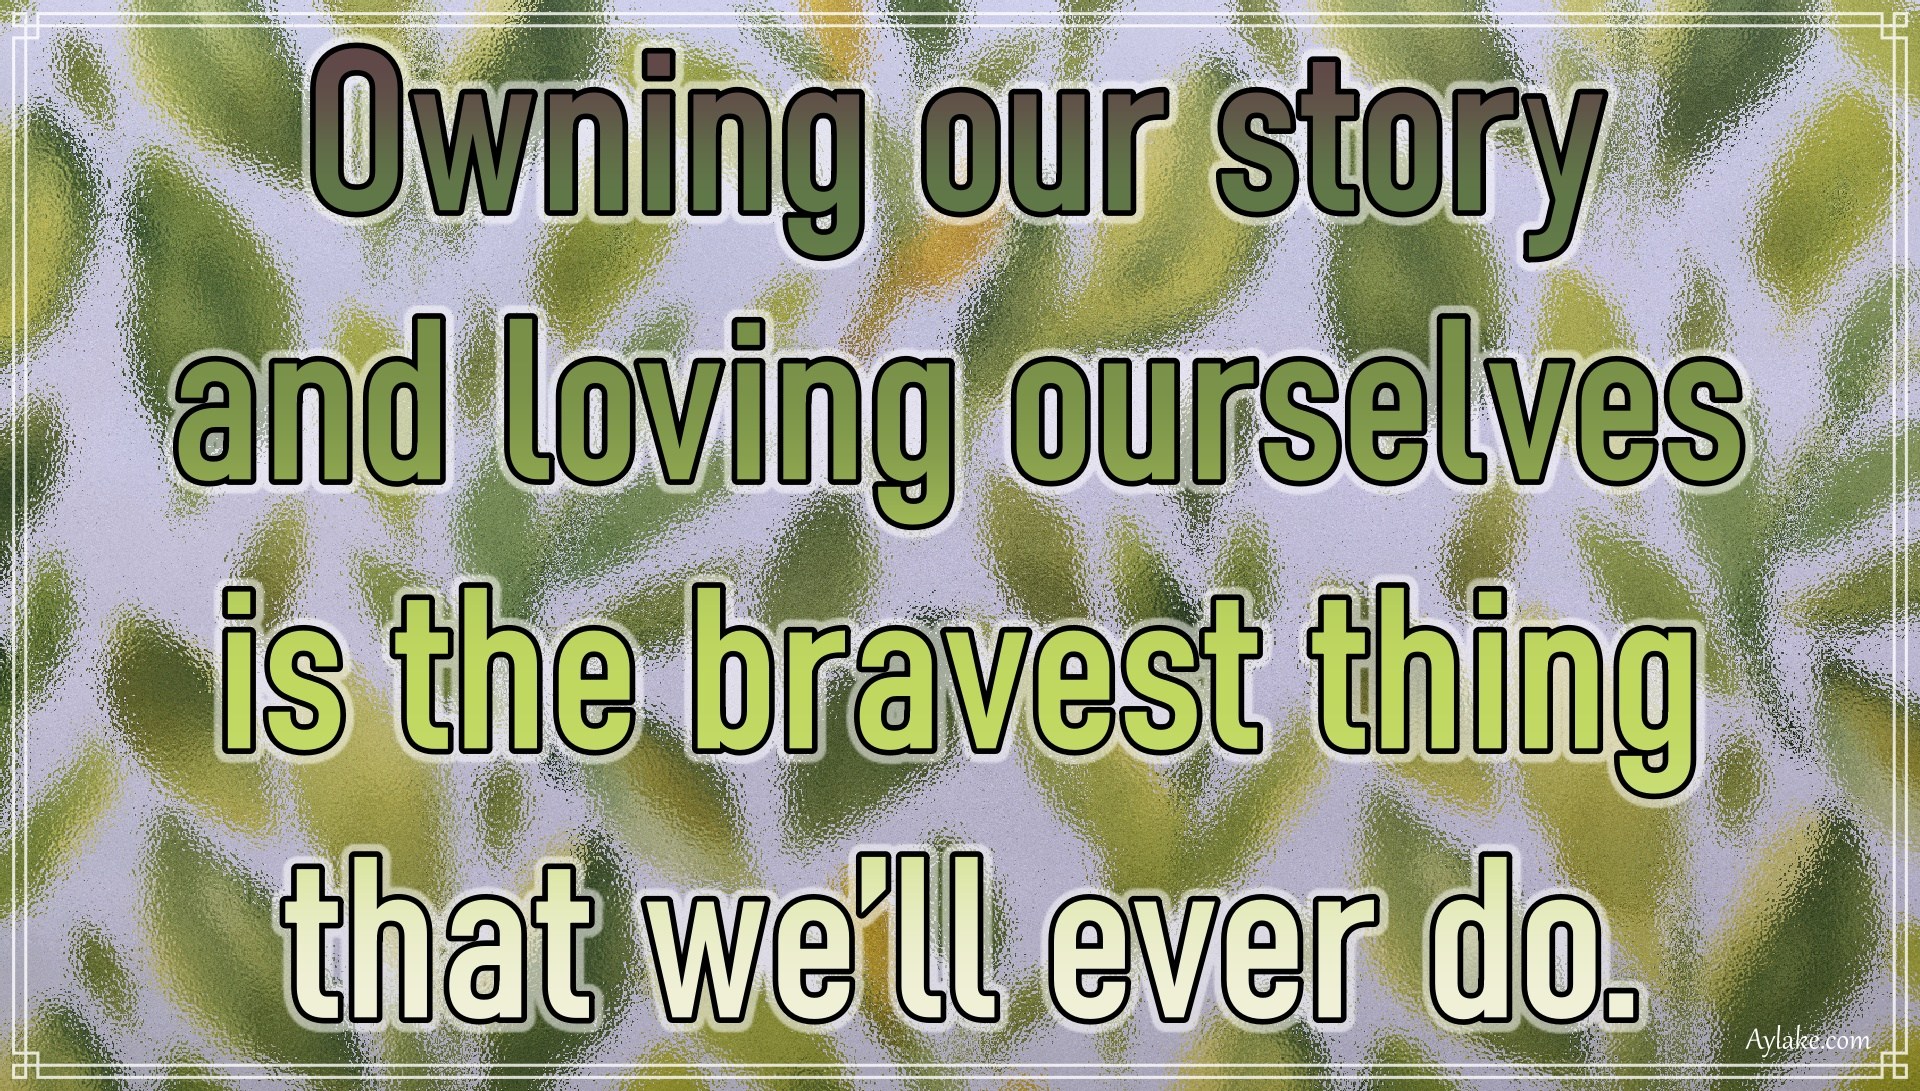 Wise quotes Owning our story and loving ourselves is the bravest thing that we will ever do Aylake